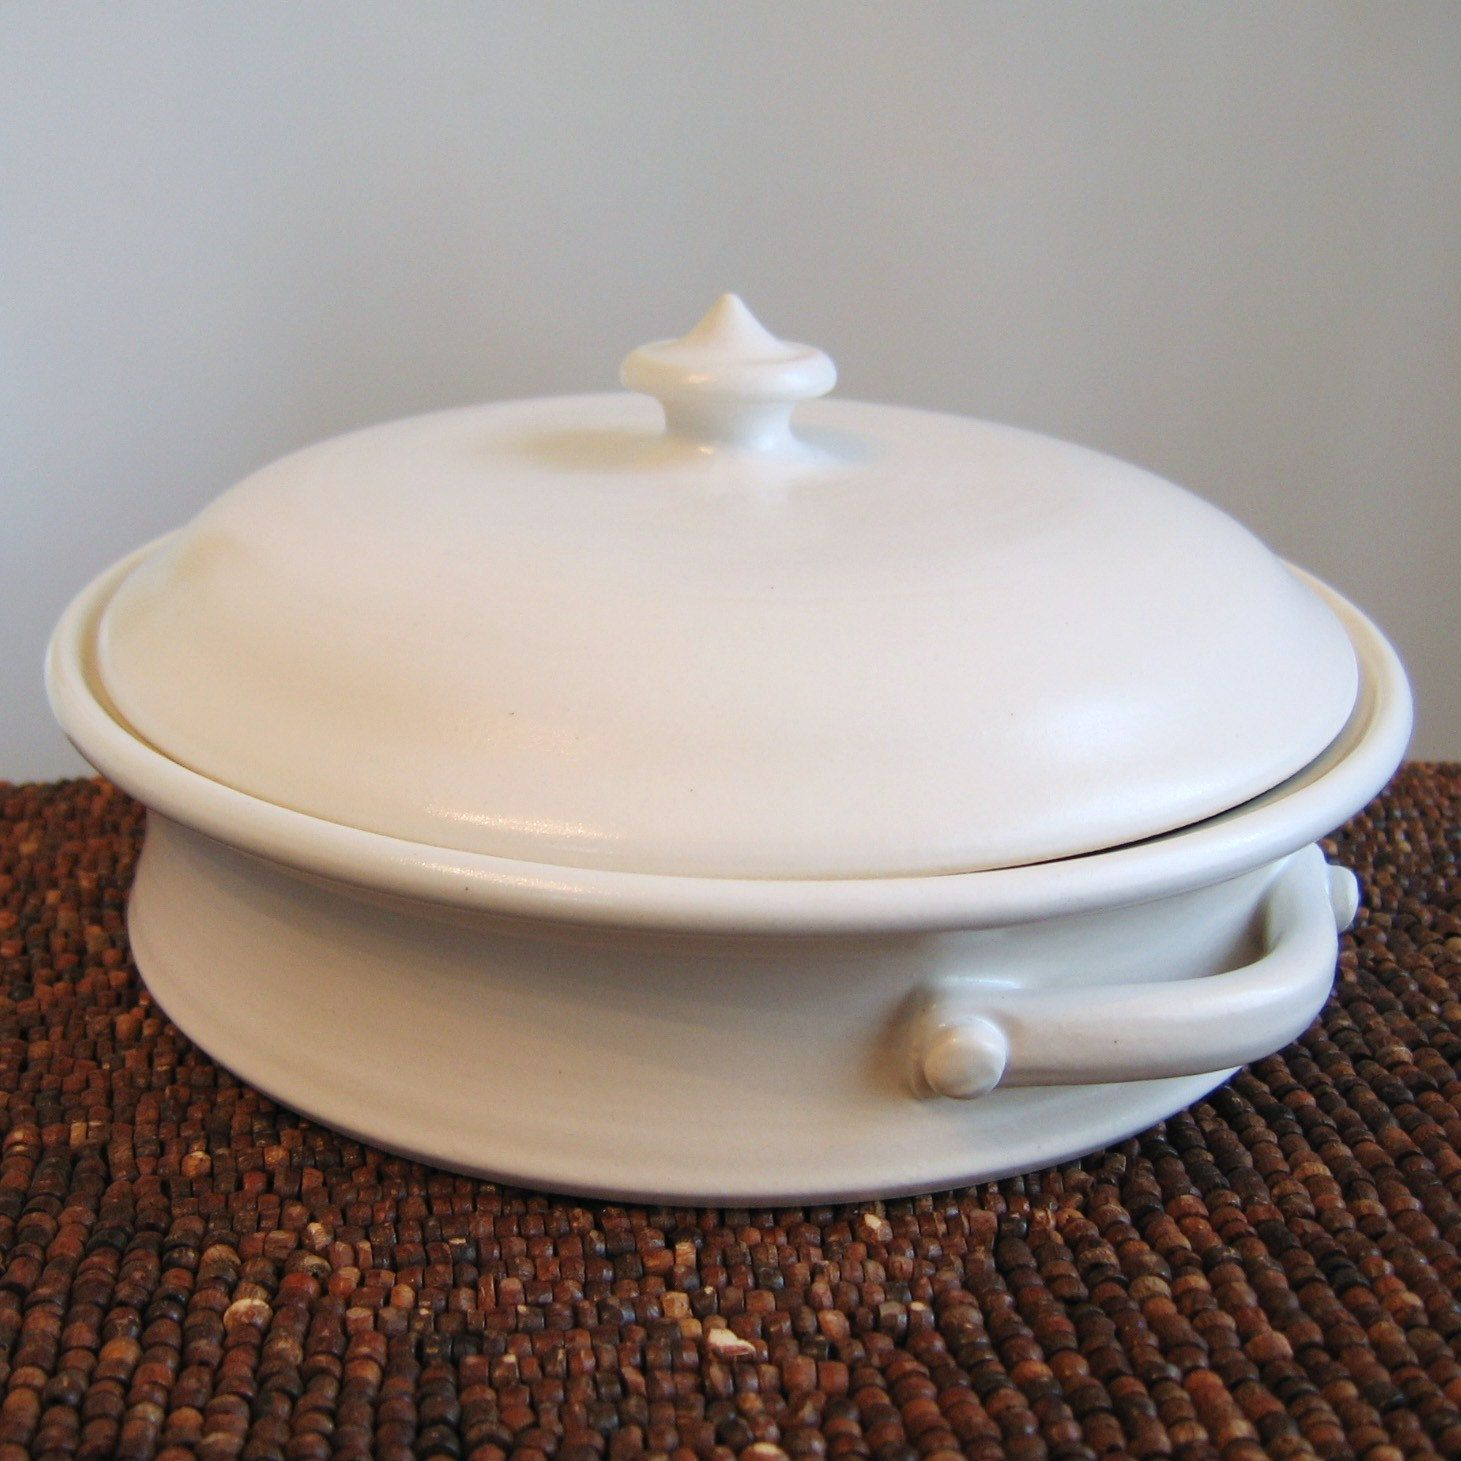 Pottery Casserole Dish With Lid - Turquoise Blue Stoneware